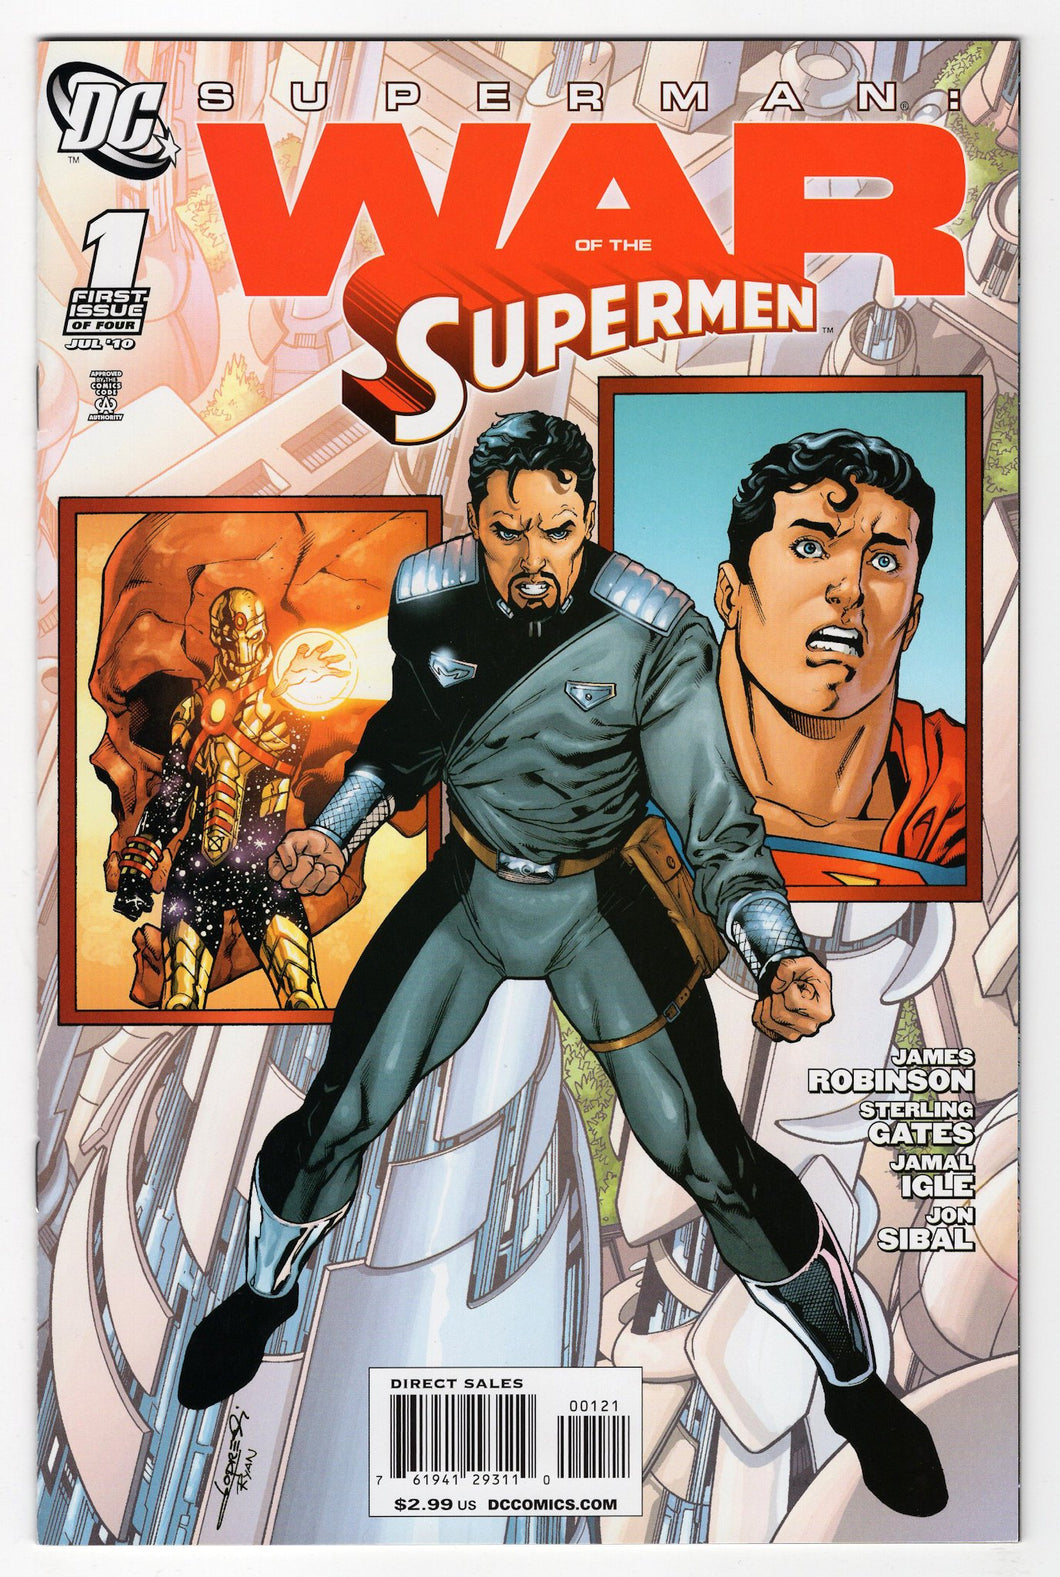 Superman War of the Supermen #1 Variant Cover Front